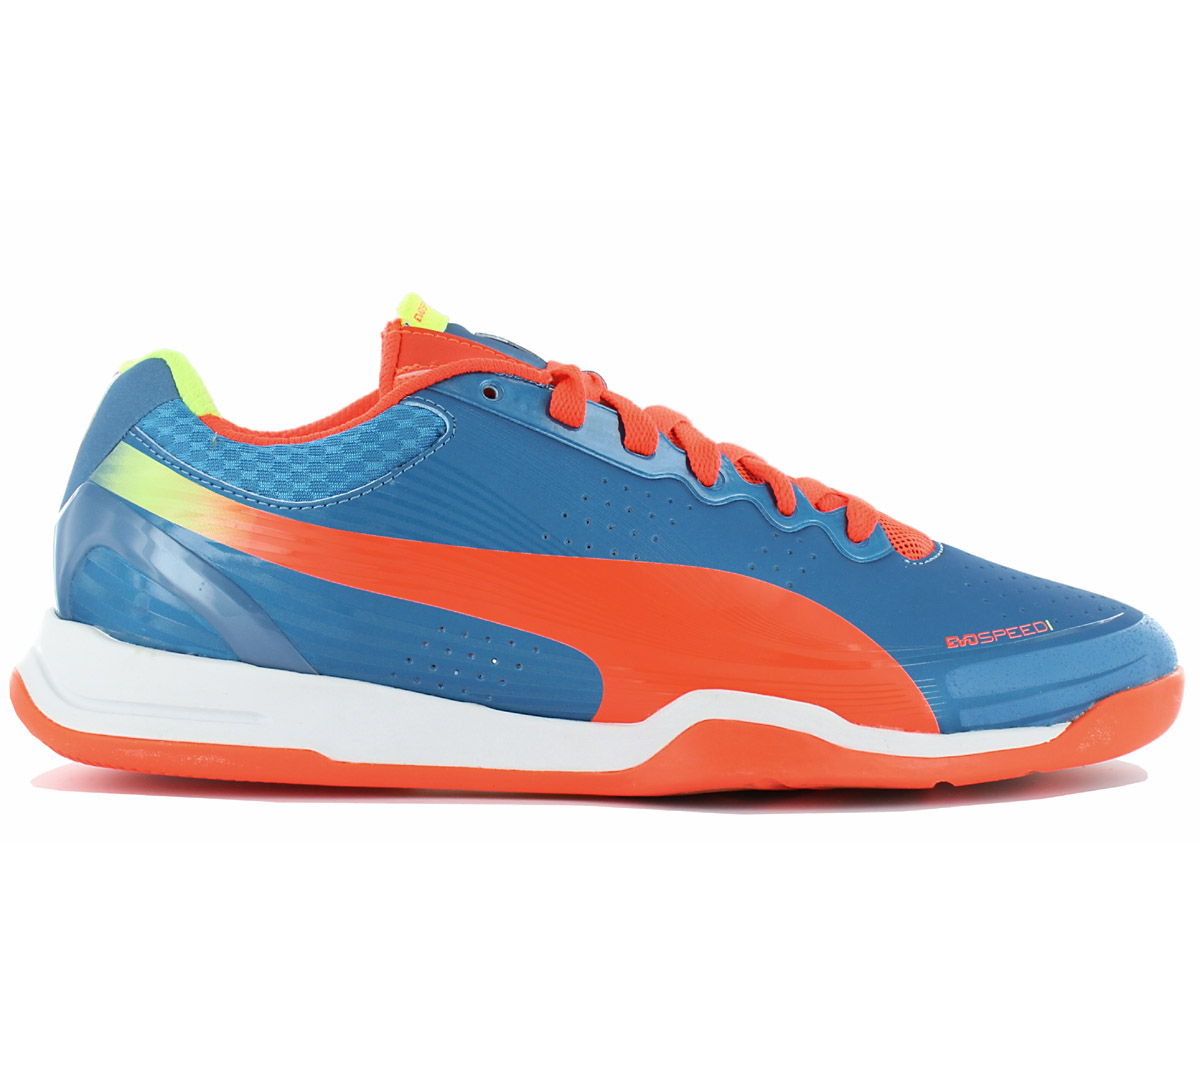 Puma Evospeed Indoor 1.2 Men's Indoor Shoes Handball ...